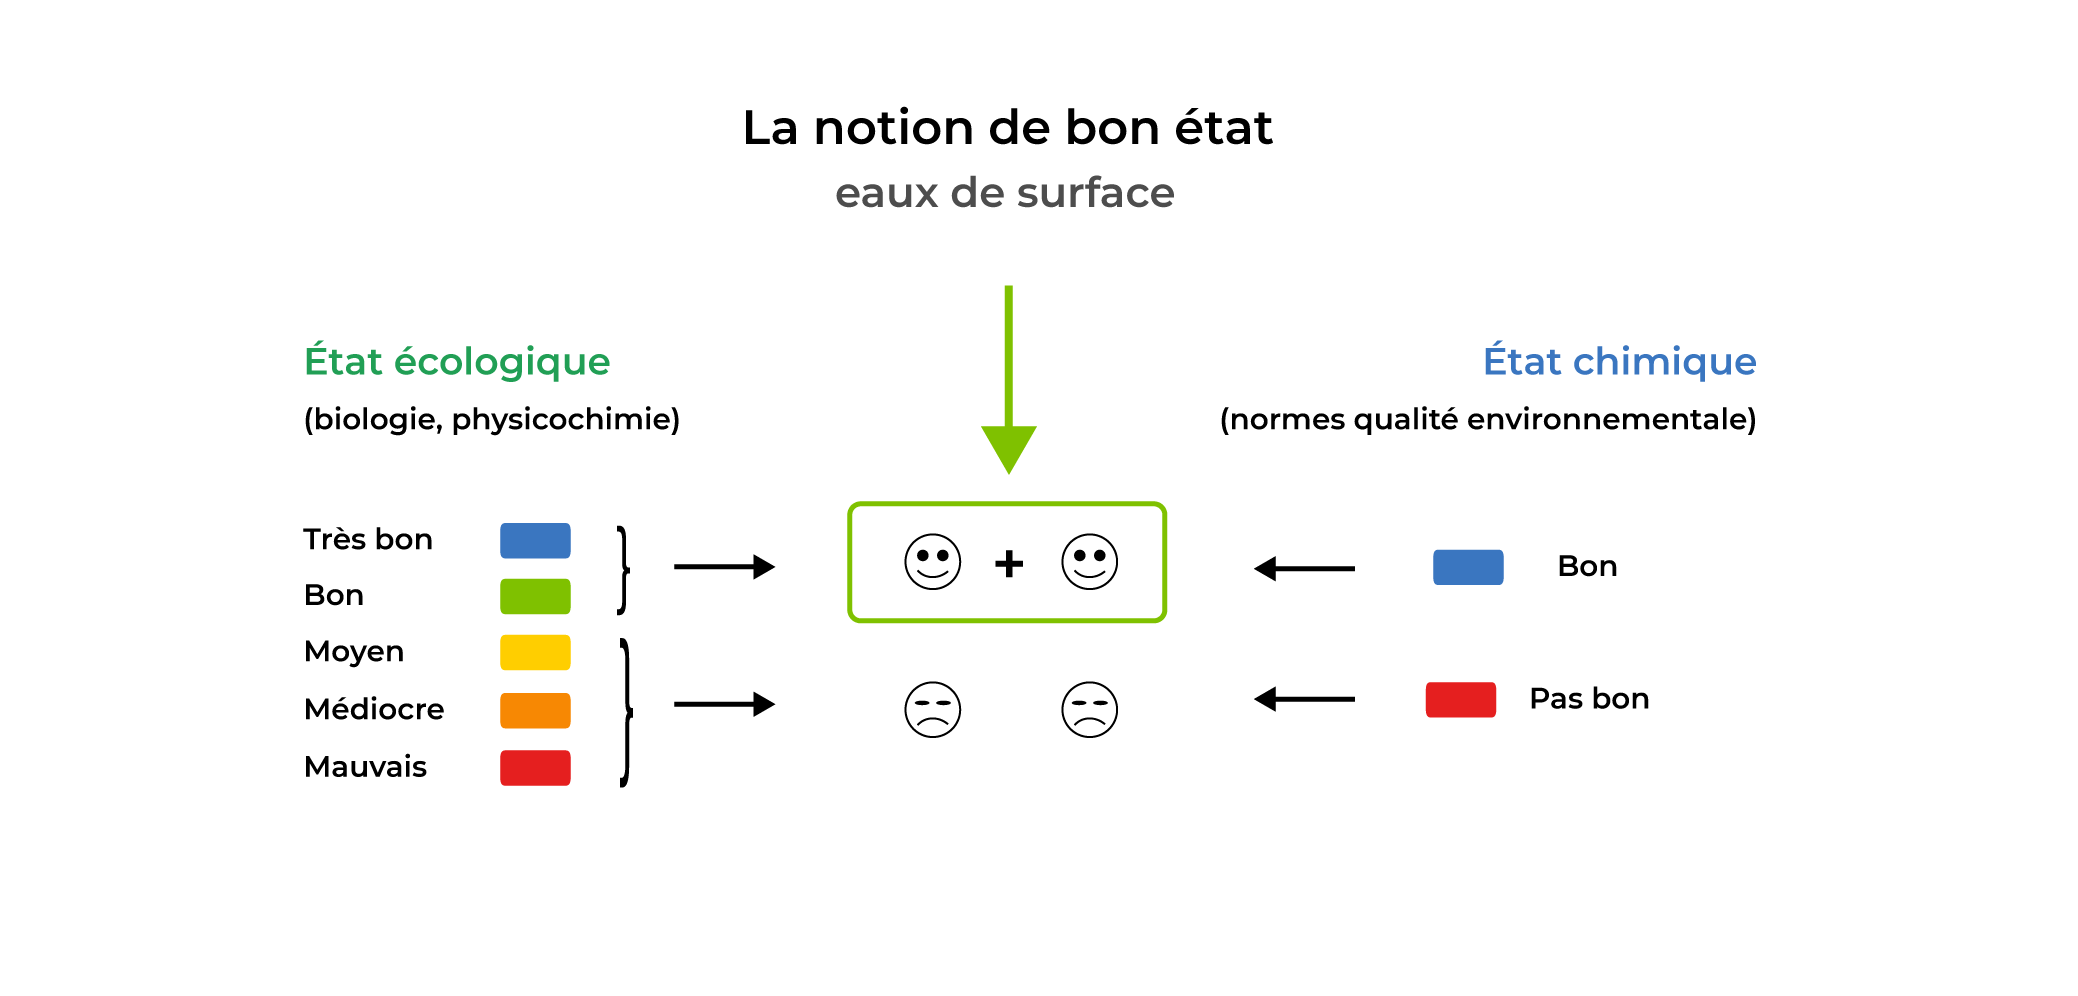 La notion de bon état : eaux de surface